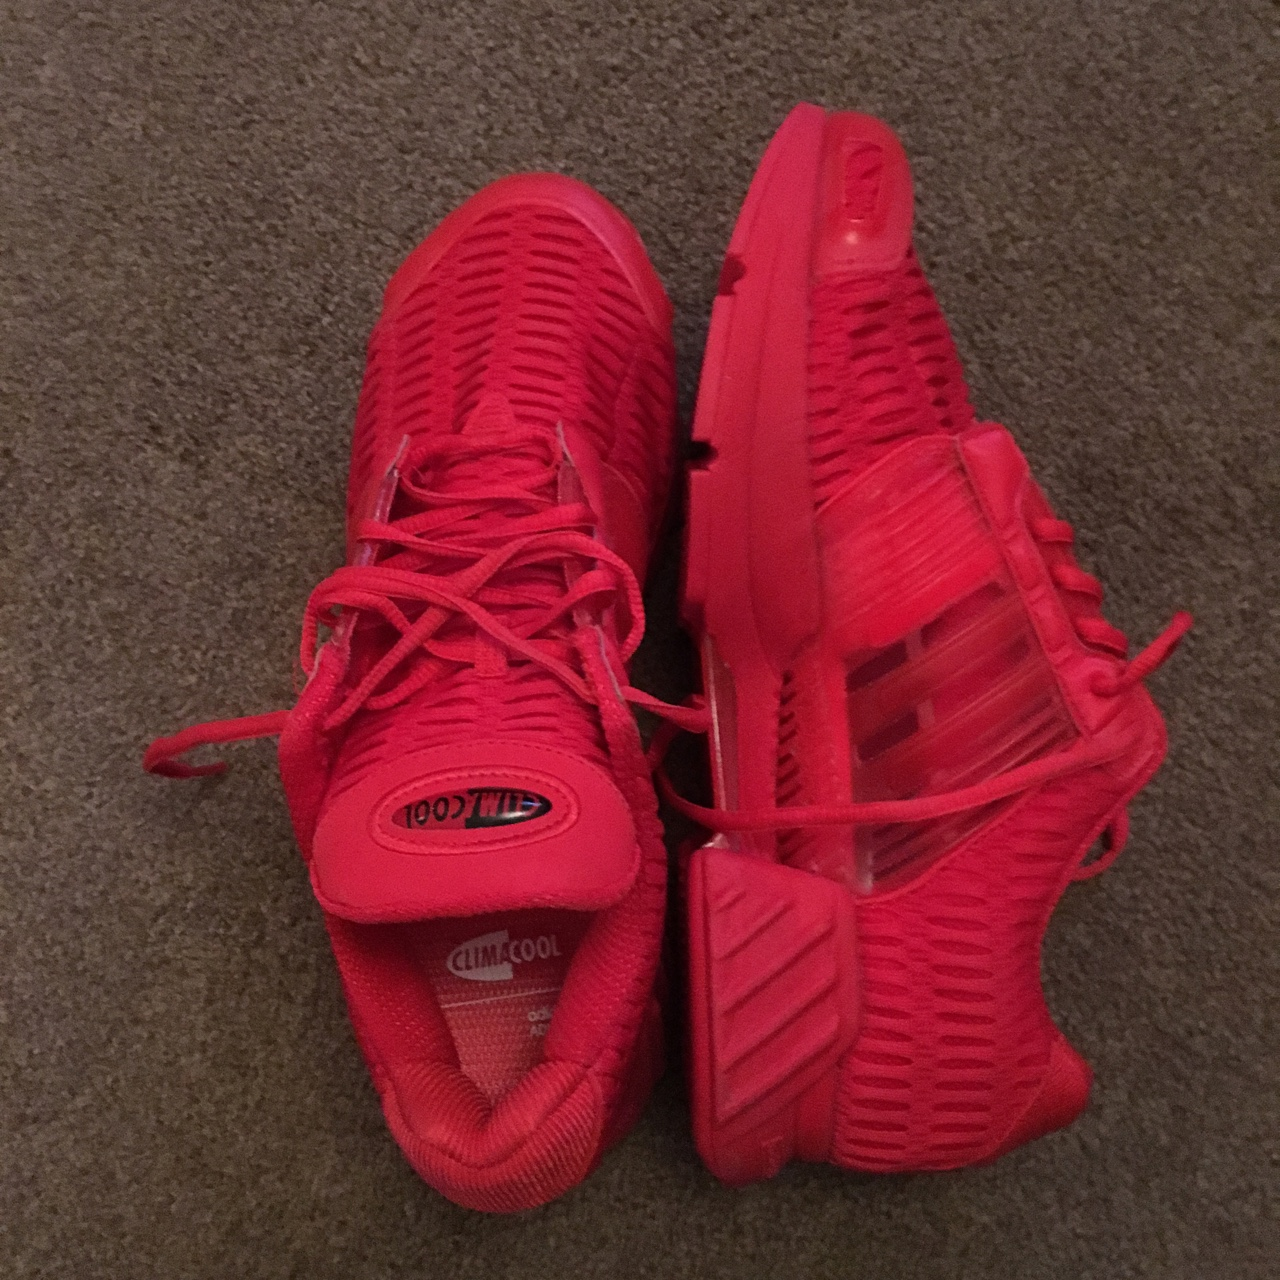 Red Adidas Climacool trainers., Size 10. Excellent...